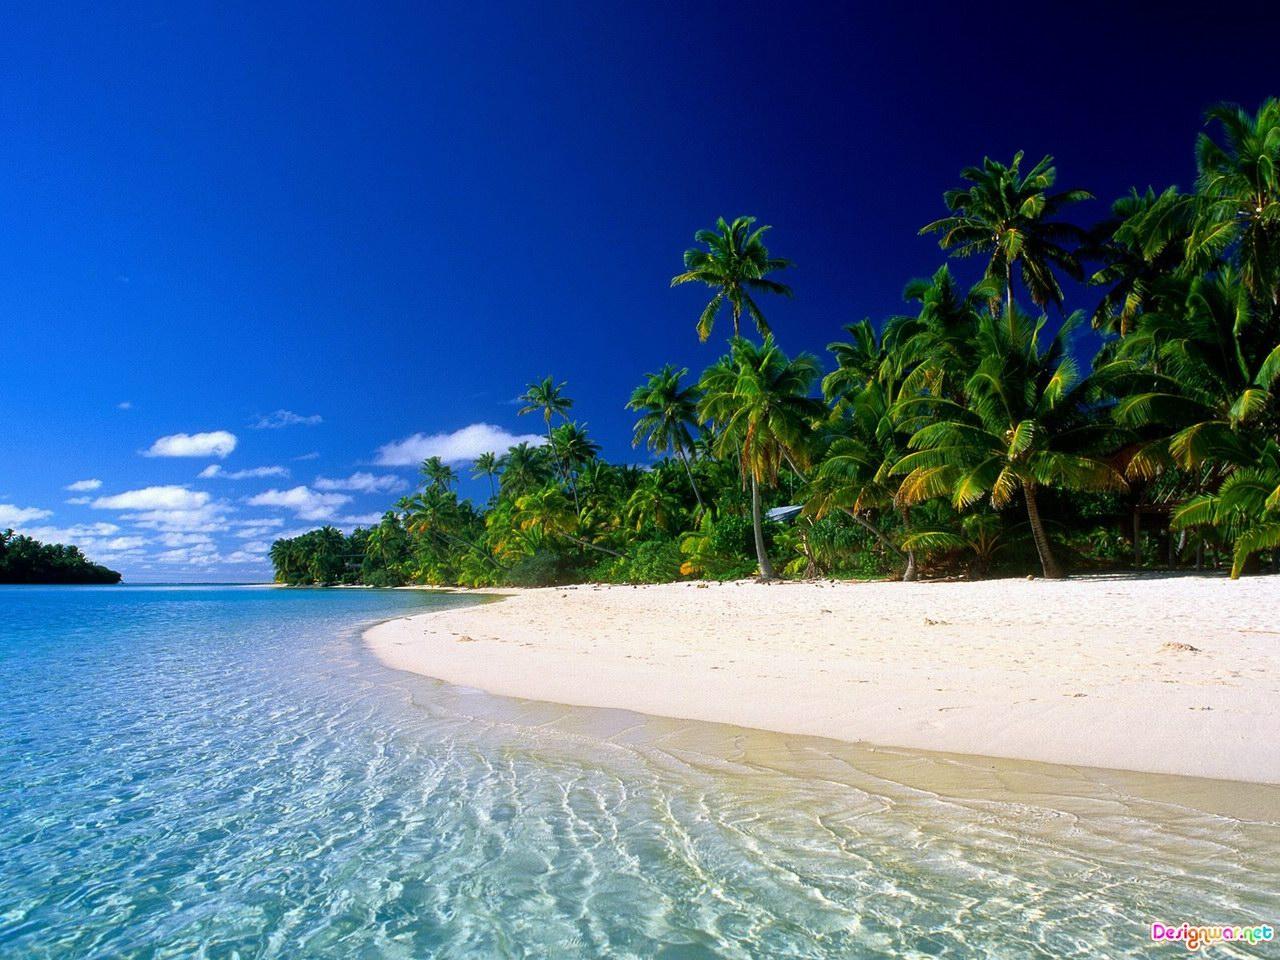 Tropical Beach hd Wallpaper and make this wallpaper for your desktop 1280x960